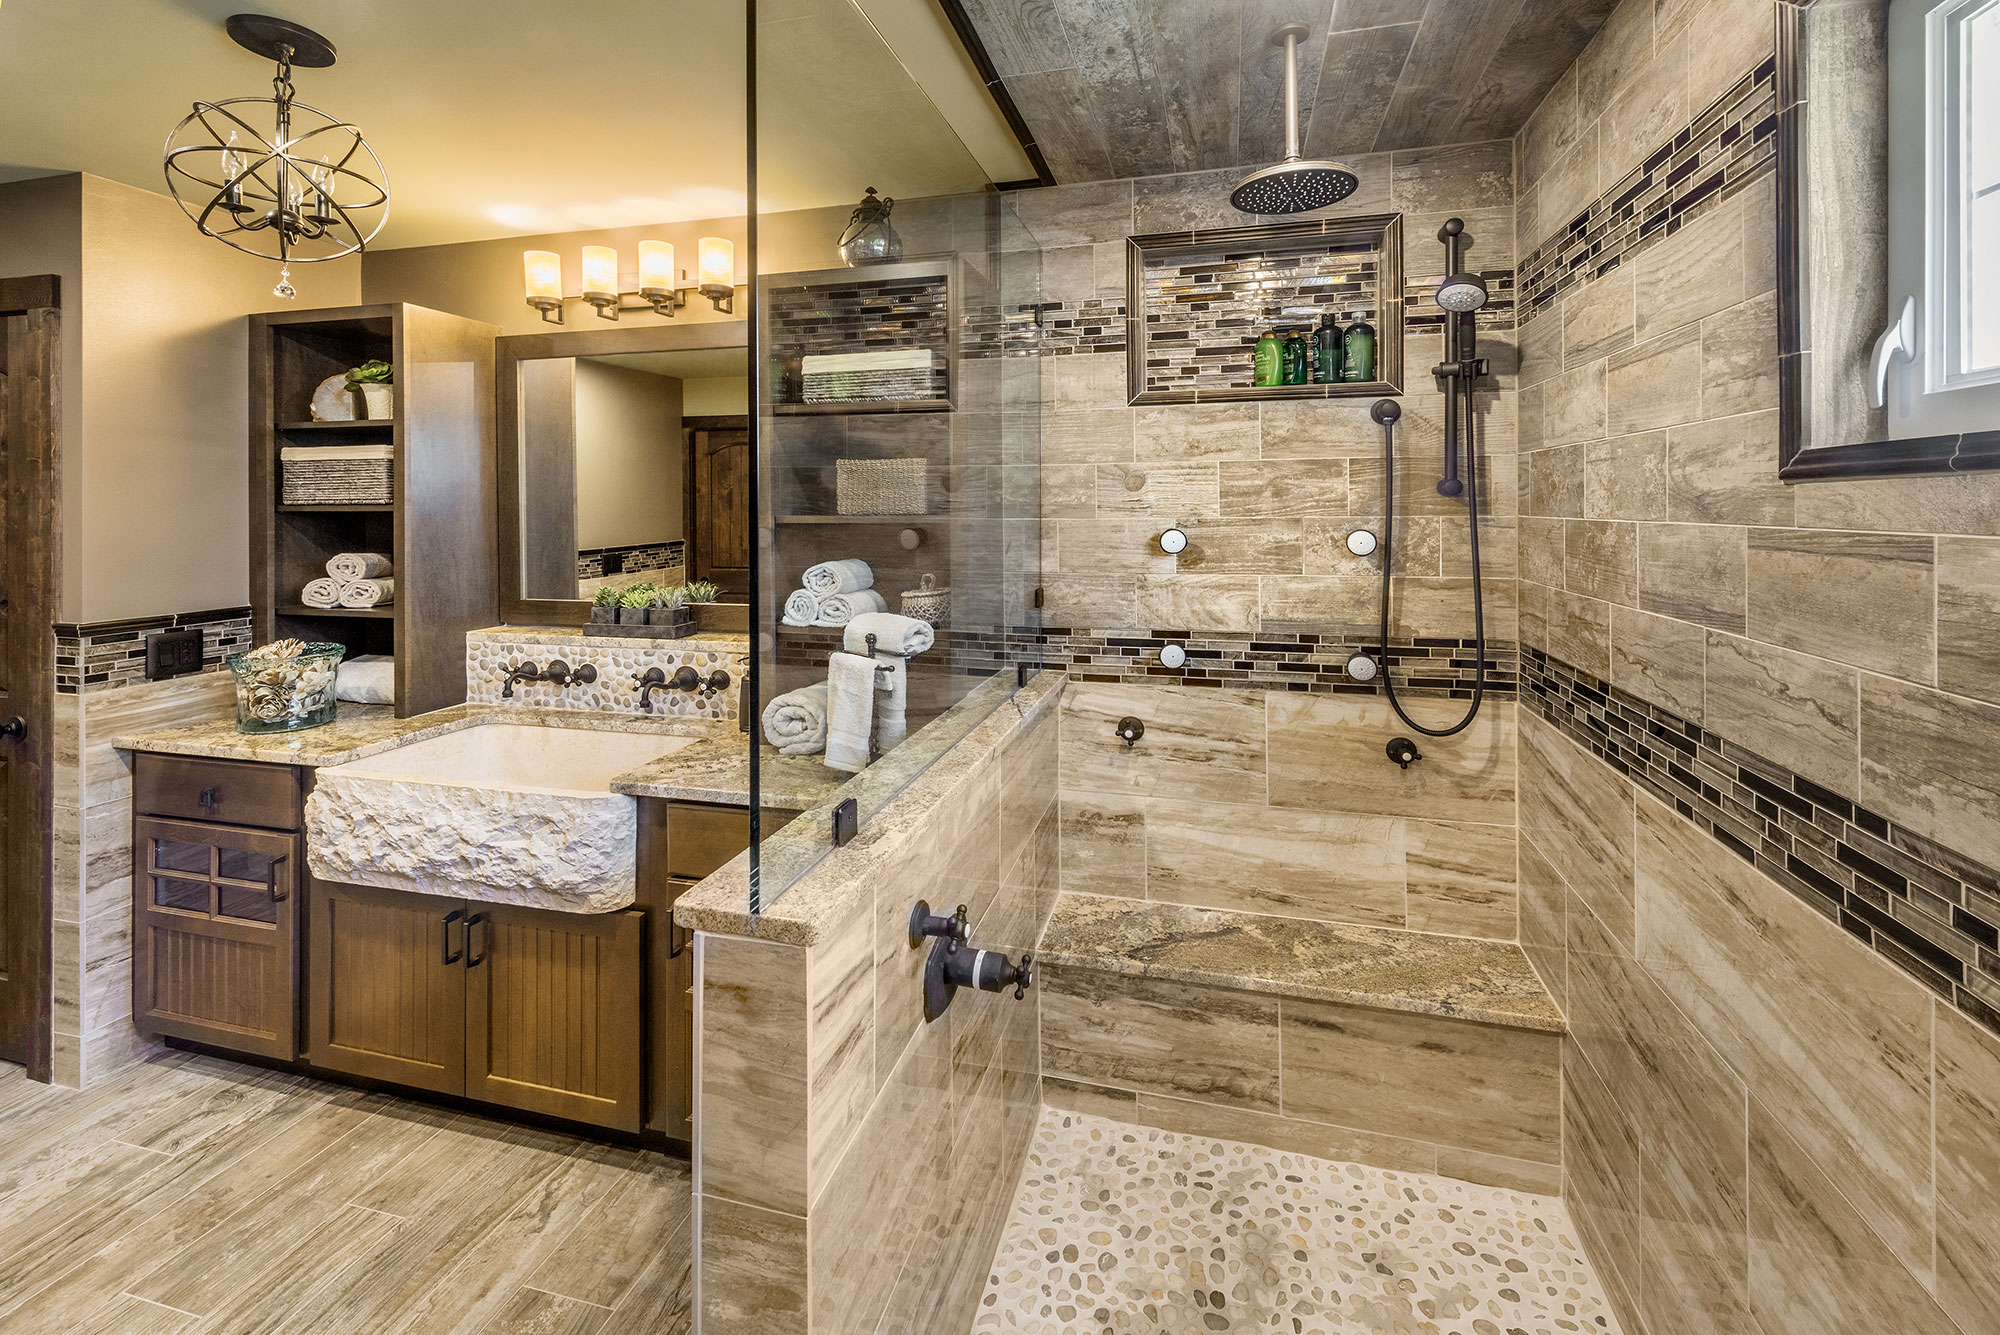 Custom design bathroom remodel by Exodus Construction - luxury coastal homes builder South County RI